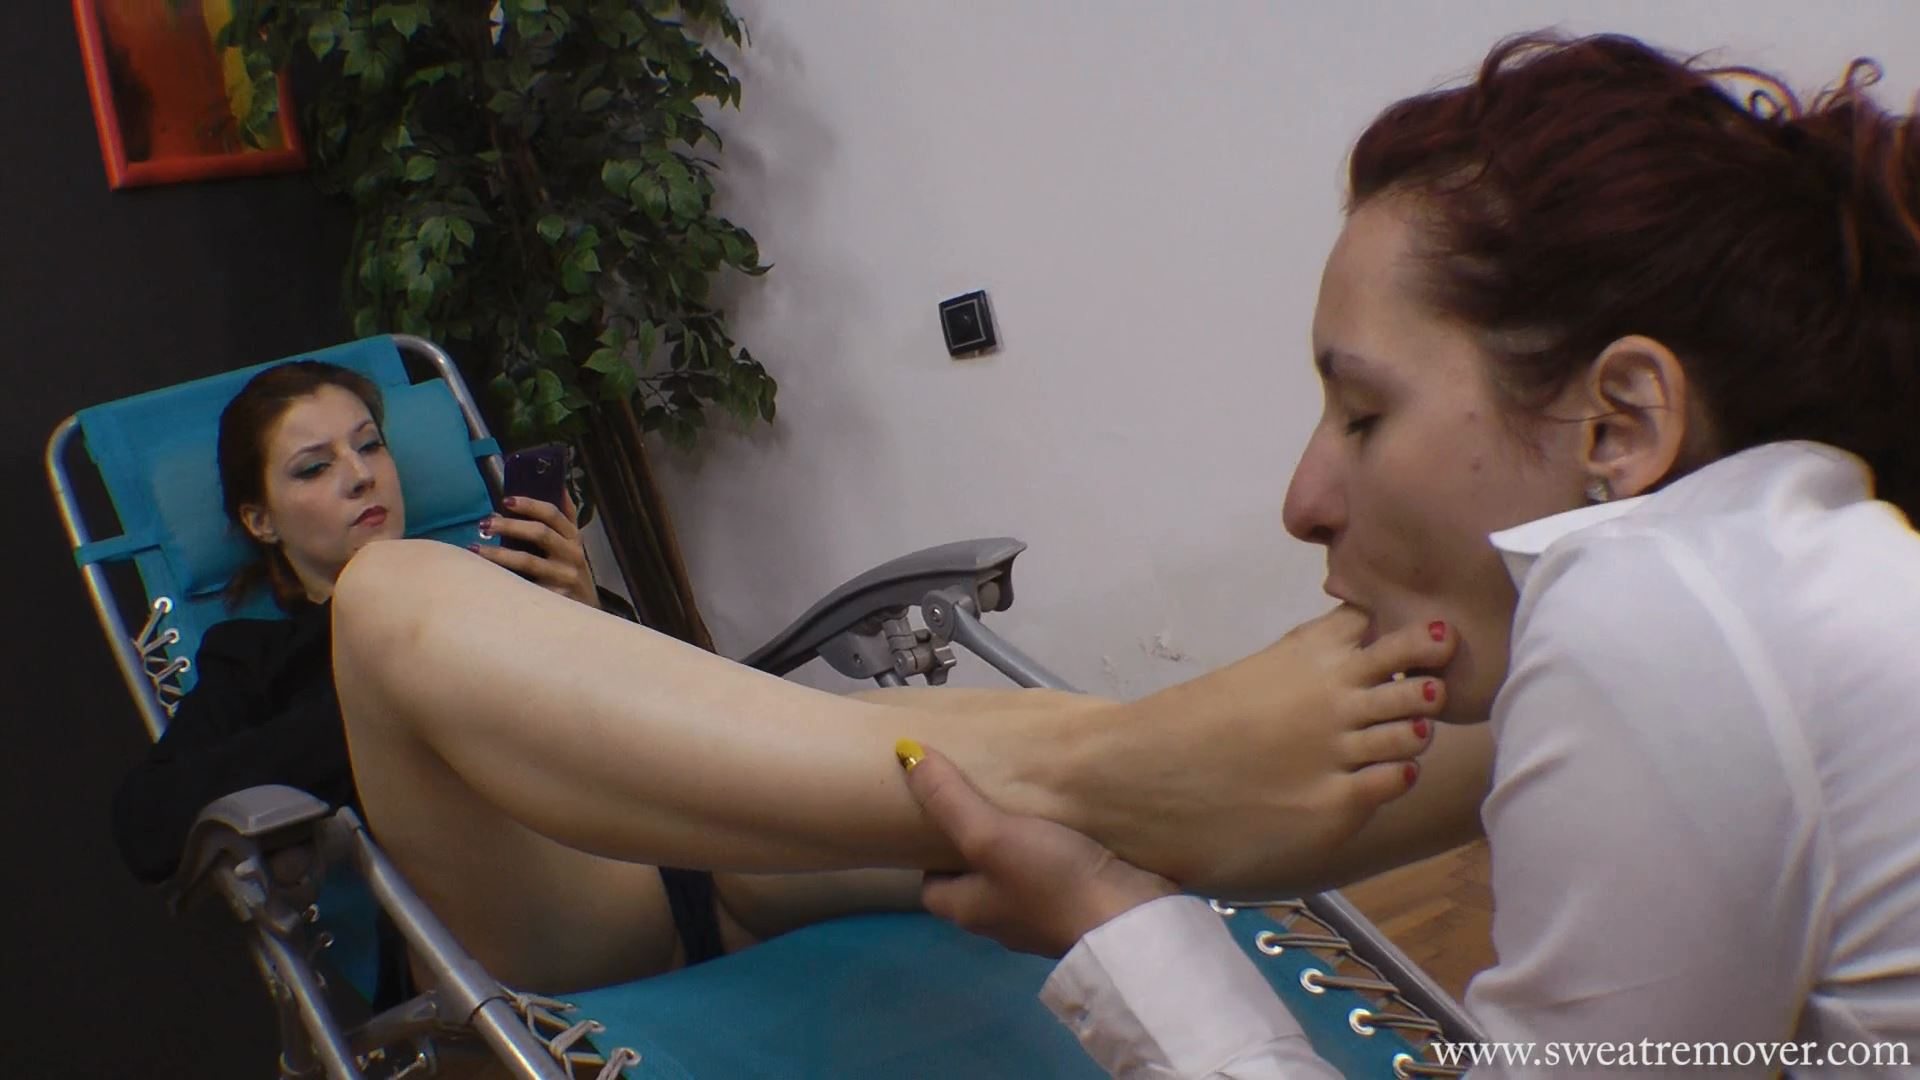 Goddess Victoria In Scene: Blue chair for feet relaxation Part 2 - SWEATREMOVER - FULL HD/1080p/MP4